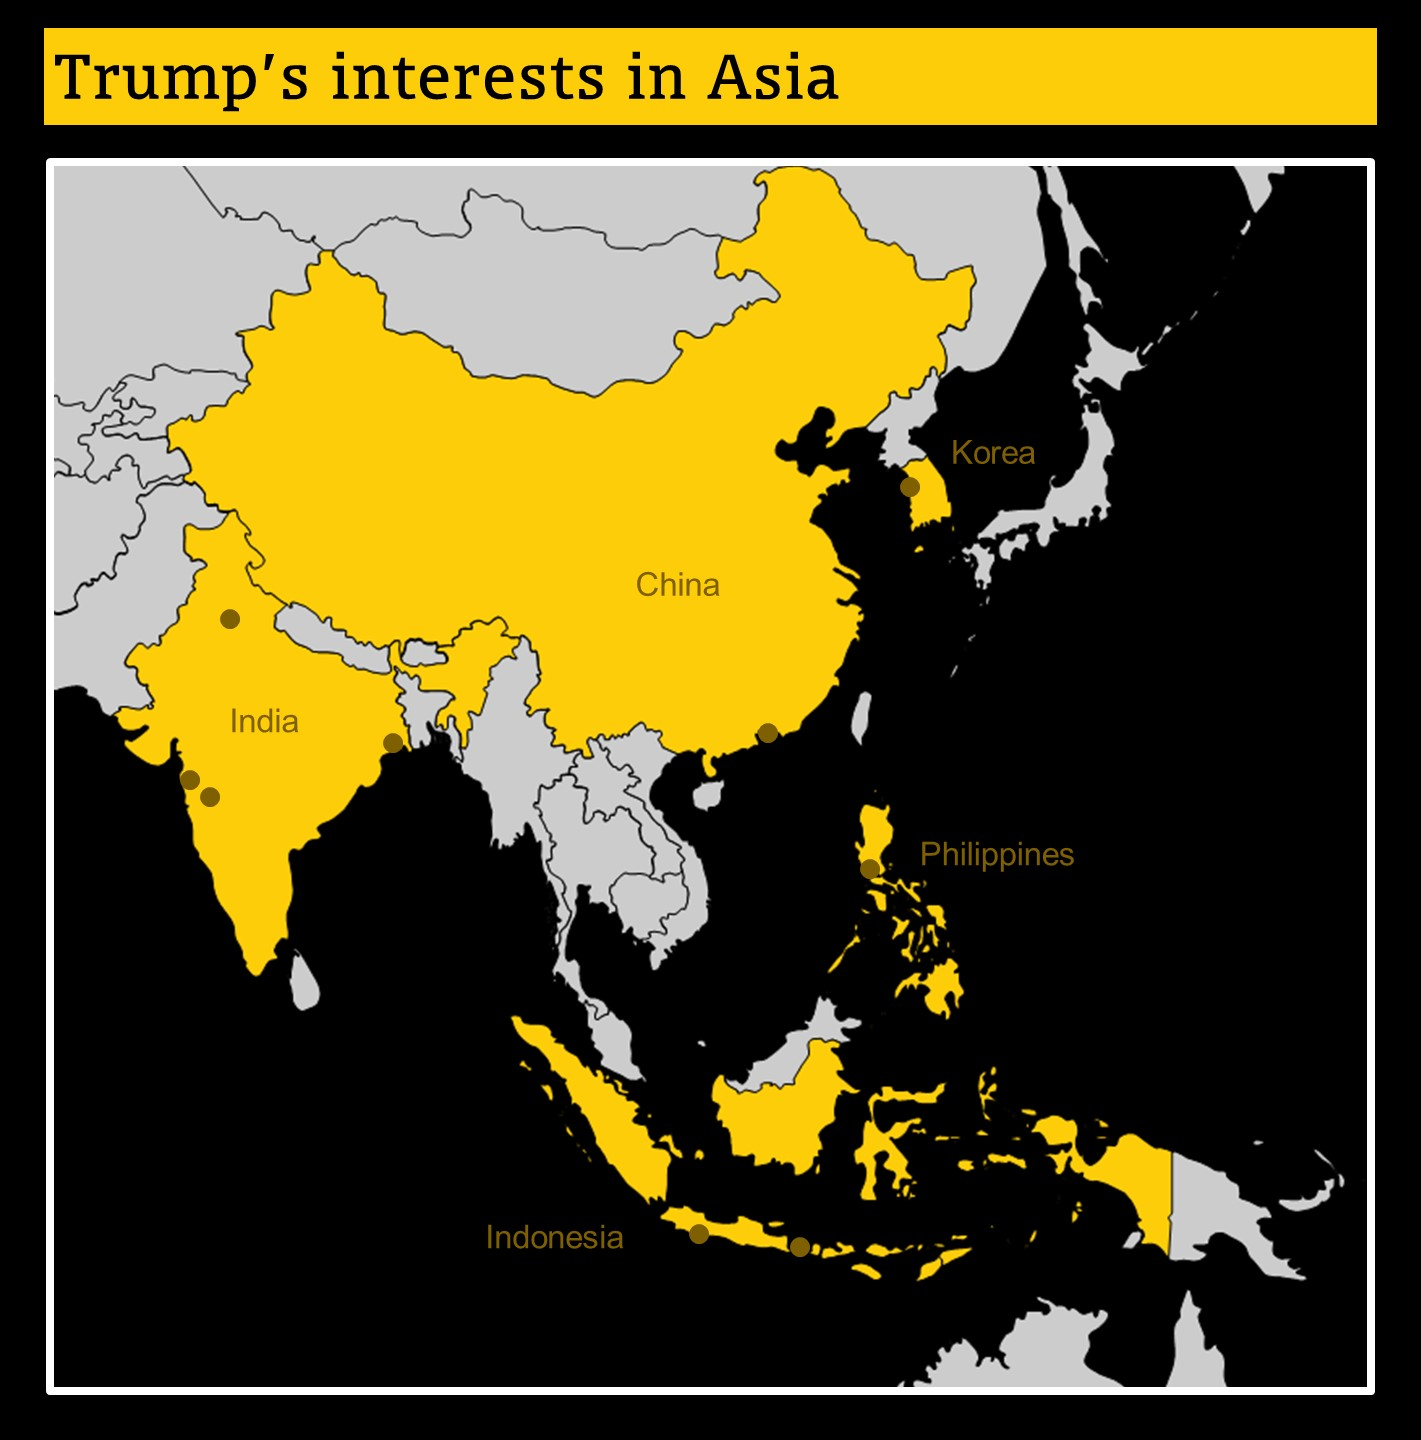 Trump's business interests in Asia